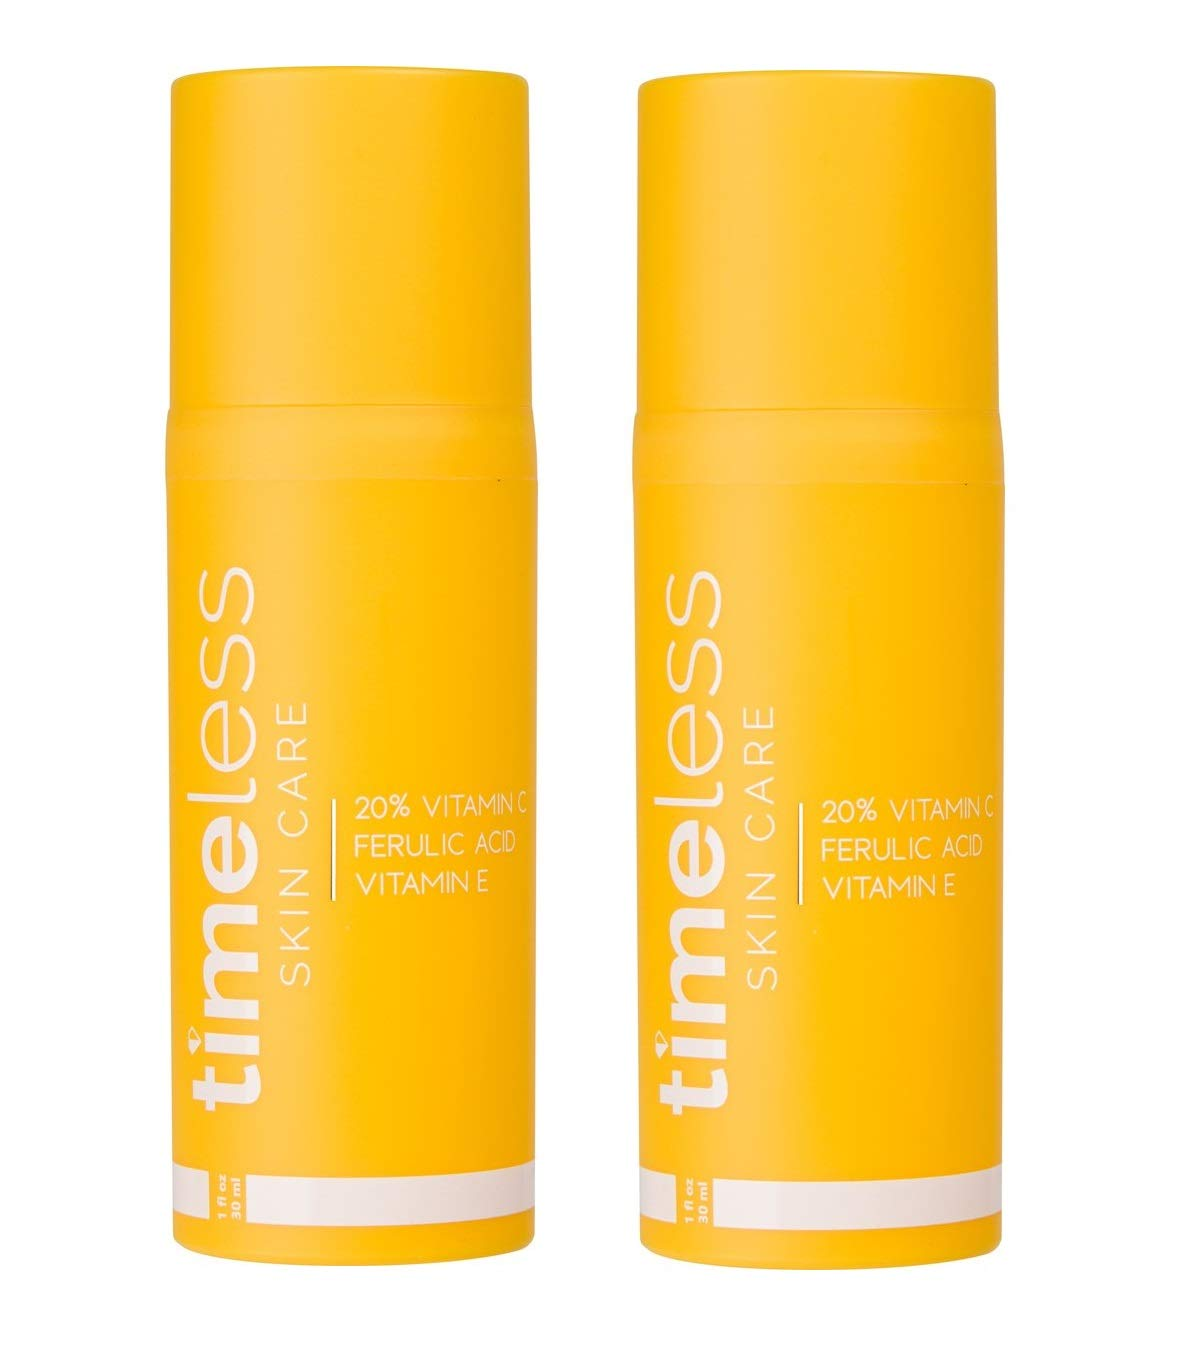 Timeless Skin Care Percent Vitamin